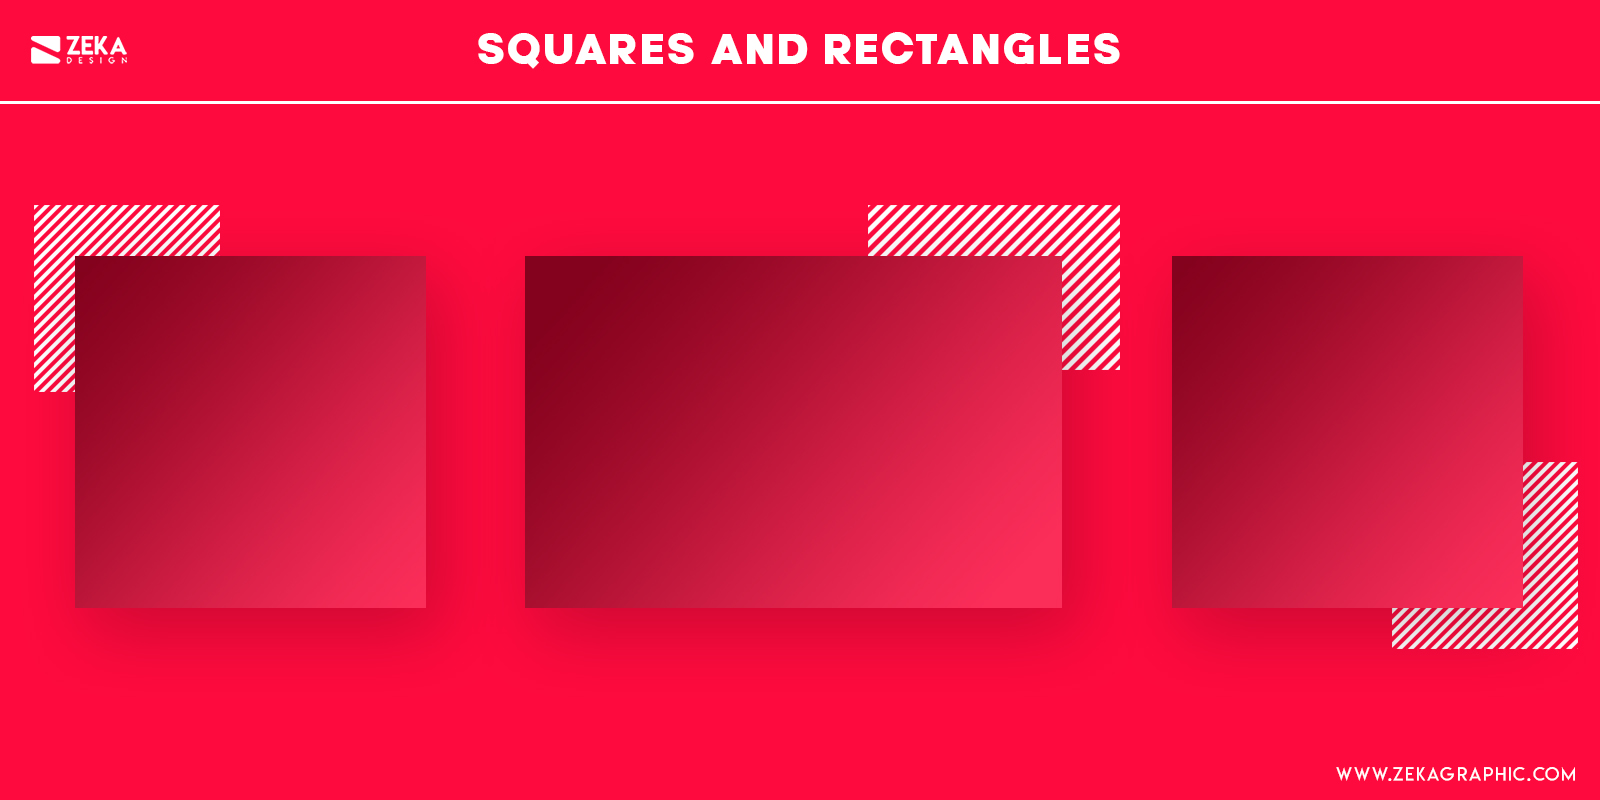 Square Shapes Psychology in Graphic Design